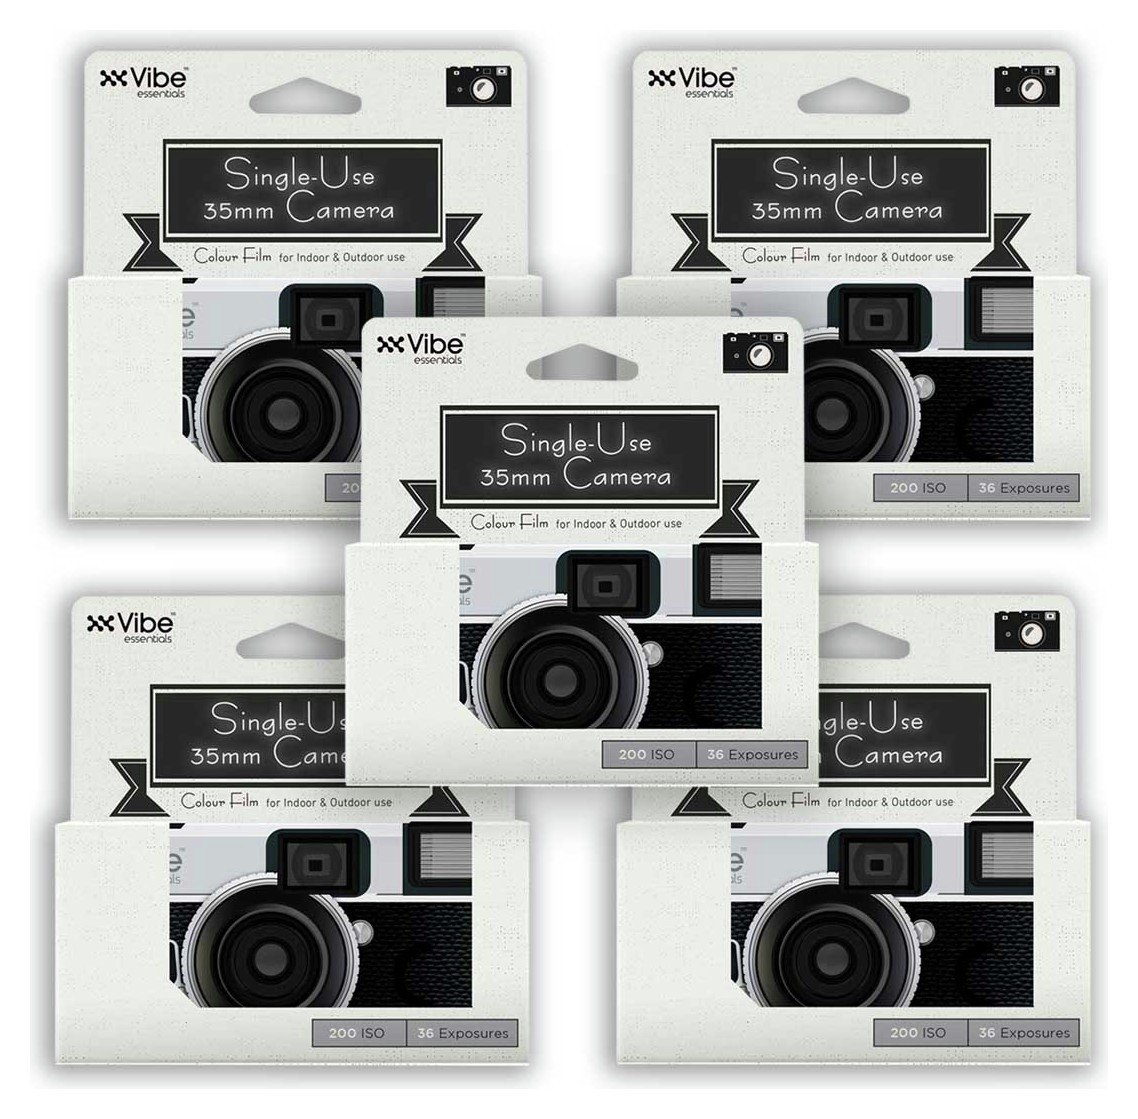 Vibe Single Use 36 Exposure Camera - 5 Pack